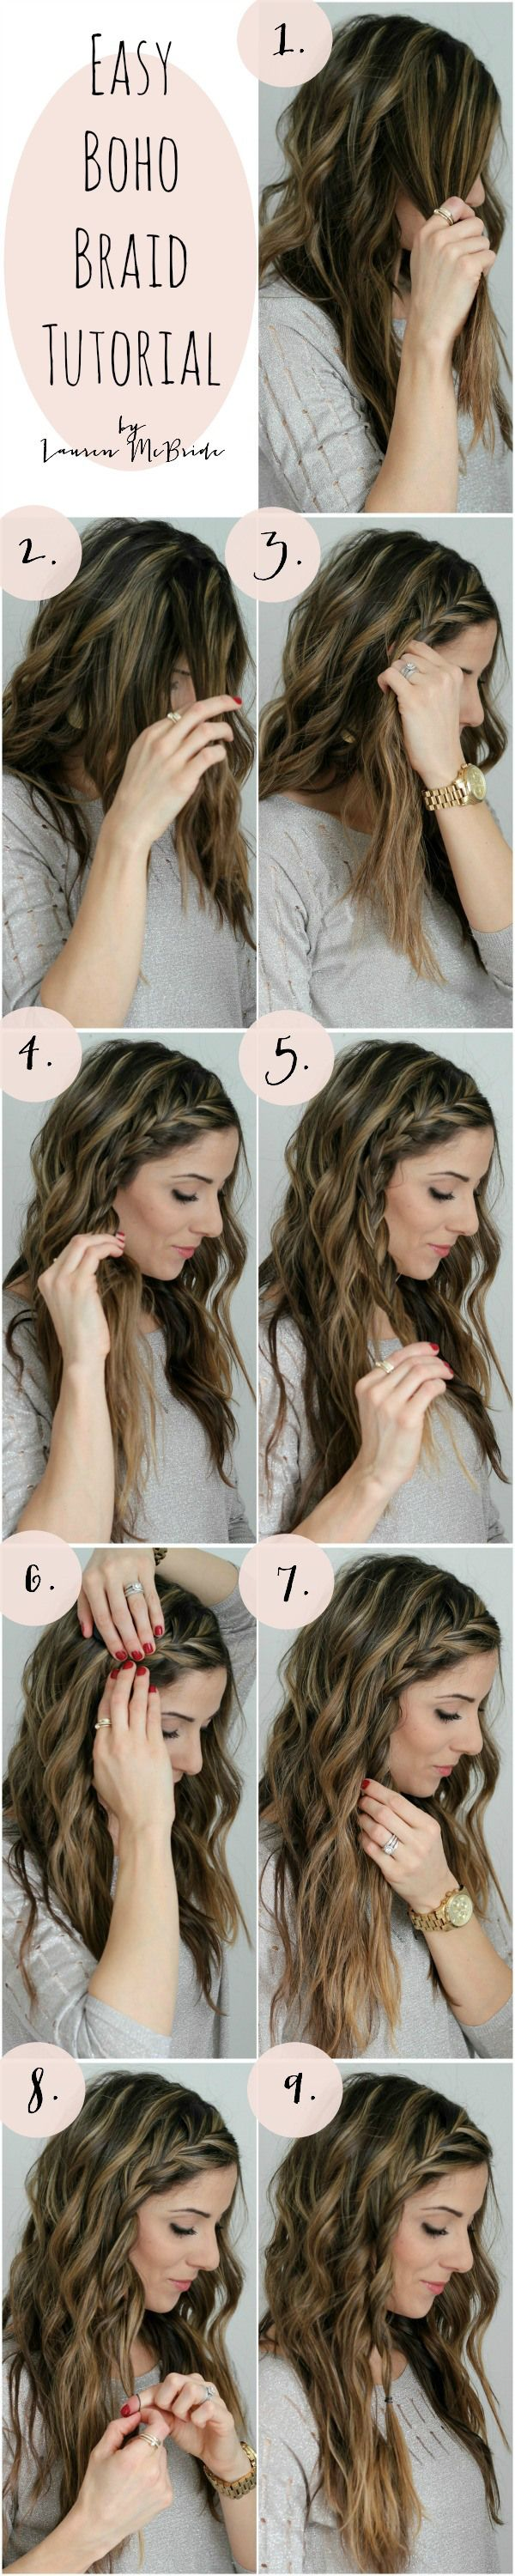 Boho Braid Tutorial